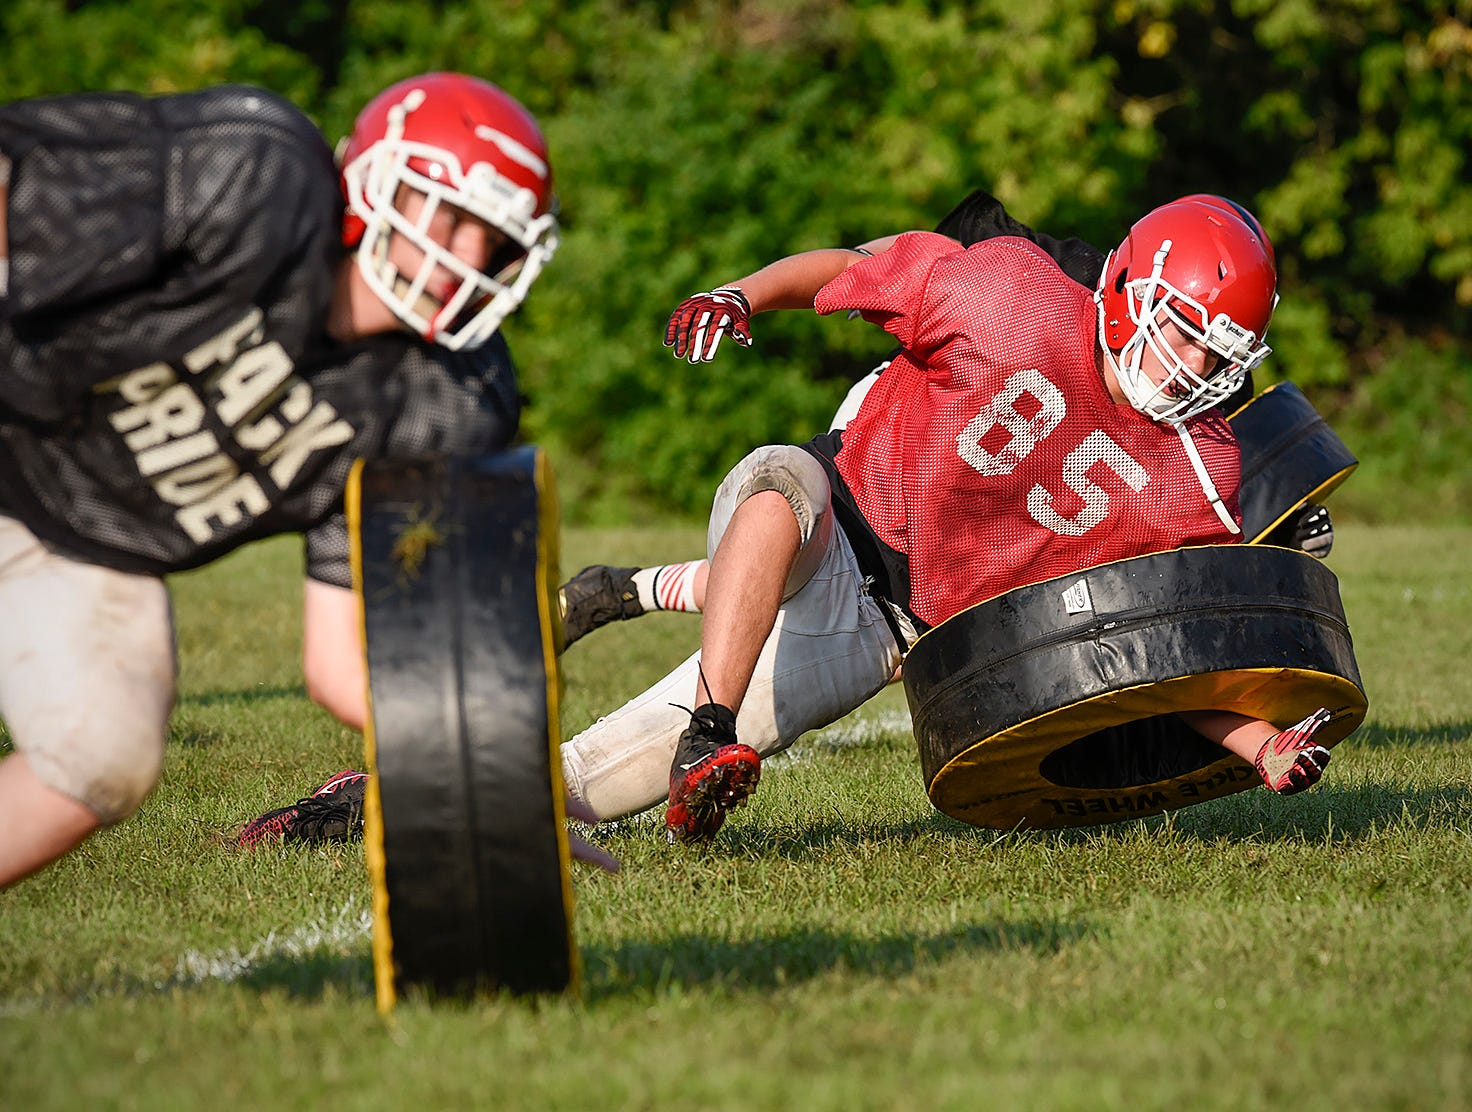 Milaca players work with rolling tackle wheels during practice Thursday, Aug. 16, in Milaca.